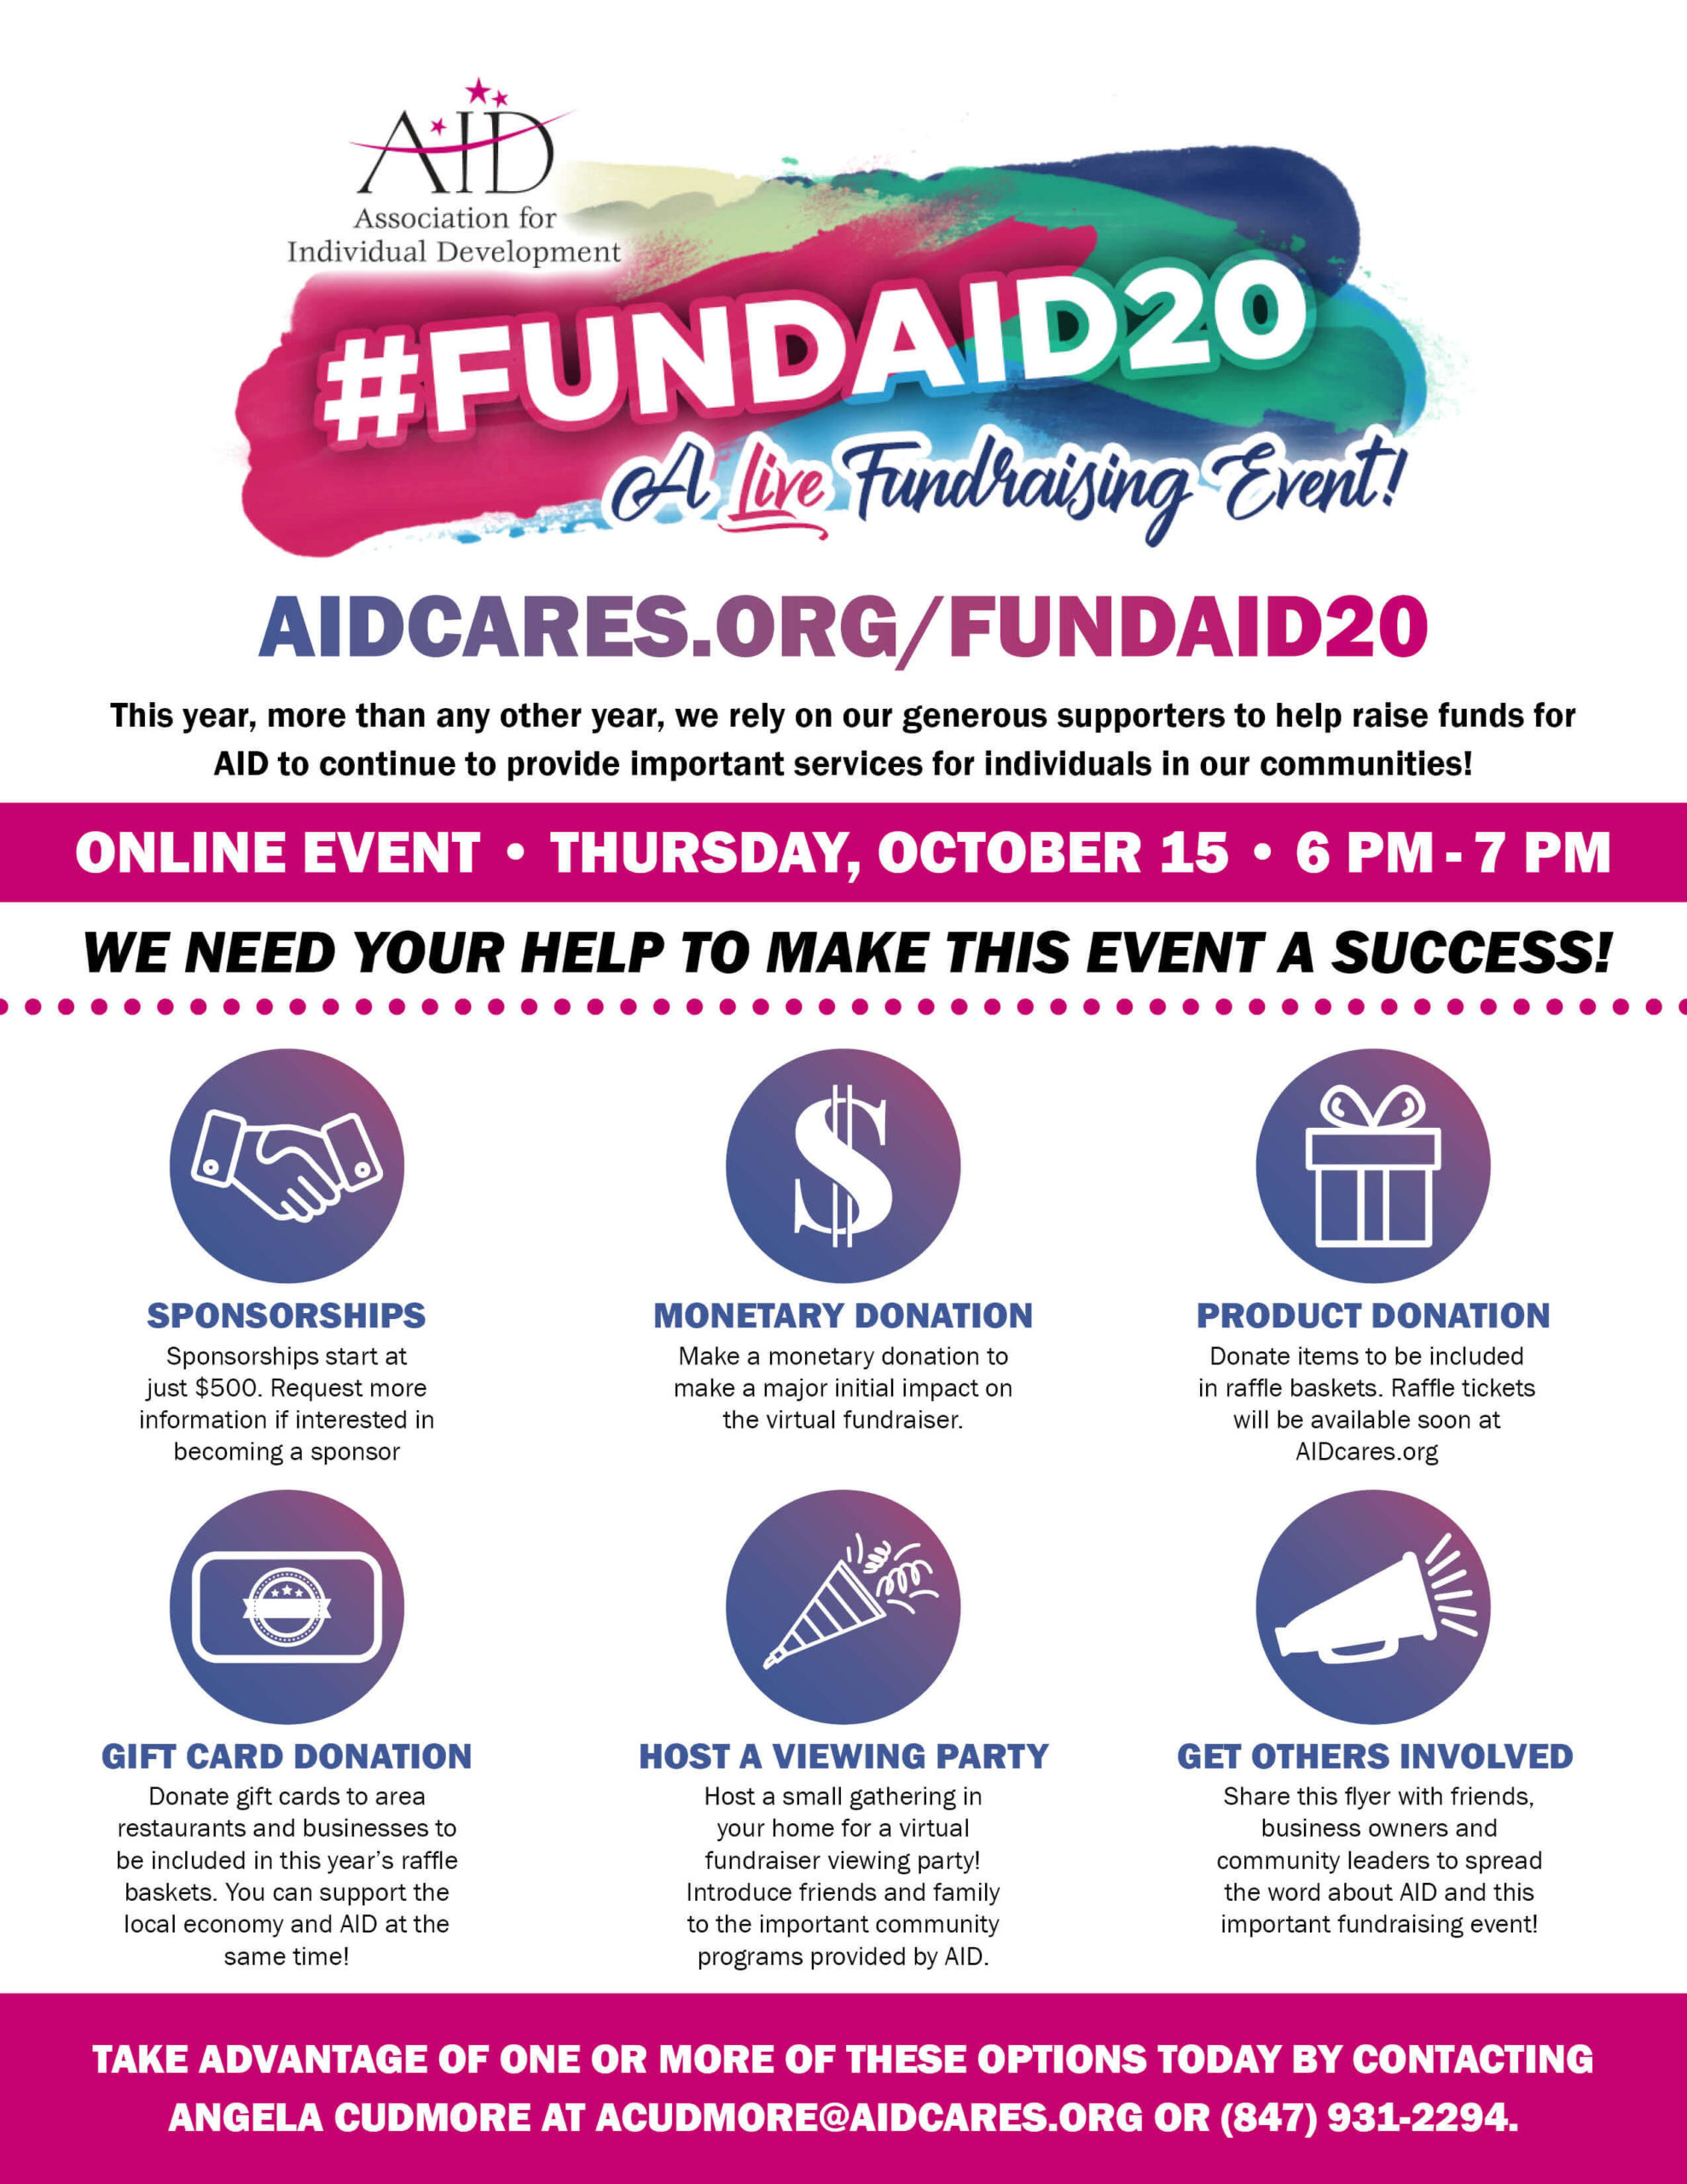 #FUNDAID20: A LIVE Fundraising Event! Thursday, October 15 from 6PM - 7PM: AIDcares.org/FUNDAID20 This year, more than any other year, we rely on our generous supporters to help raise funds for AID continue to provide the services for individuals in our communities. We need your help to make this event a success! Become a sponsor, make a monetary, product or gift card donation, host a viewing party and get others involved! Take advantage of one or more of these options today by contacting Angela Cudmore, AID Events Coordinator at acudmore@aidcares.org or (847) 931-2294.